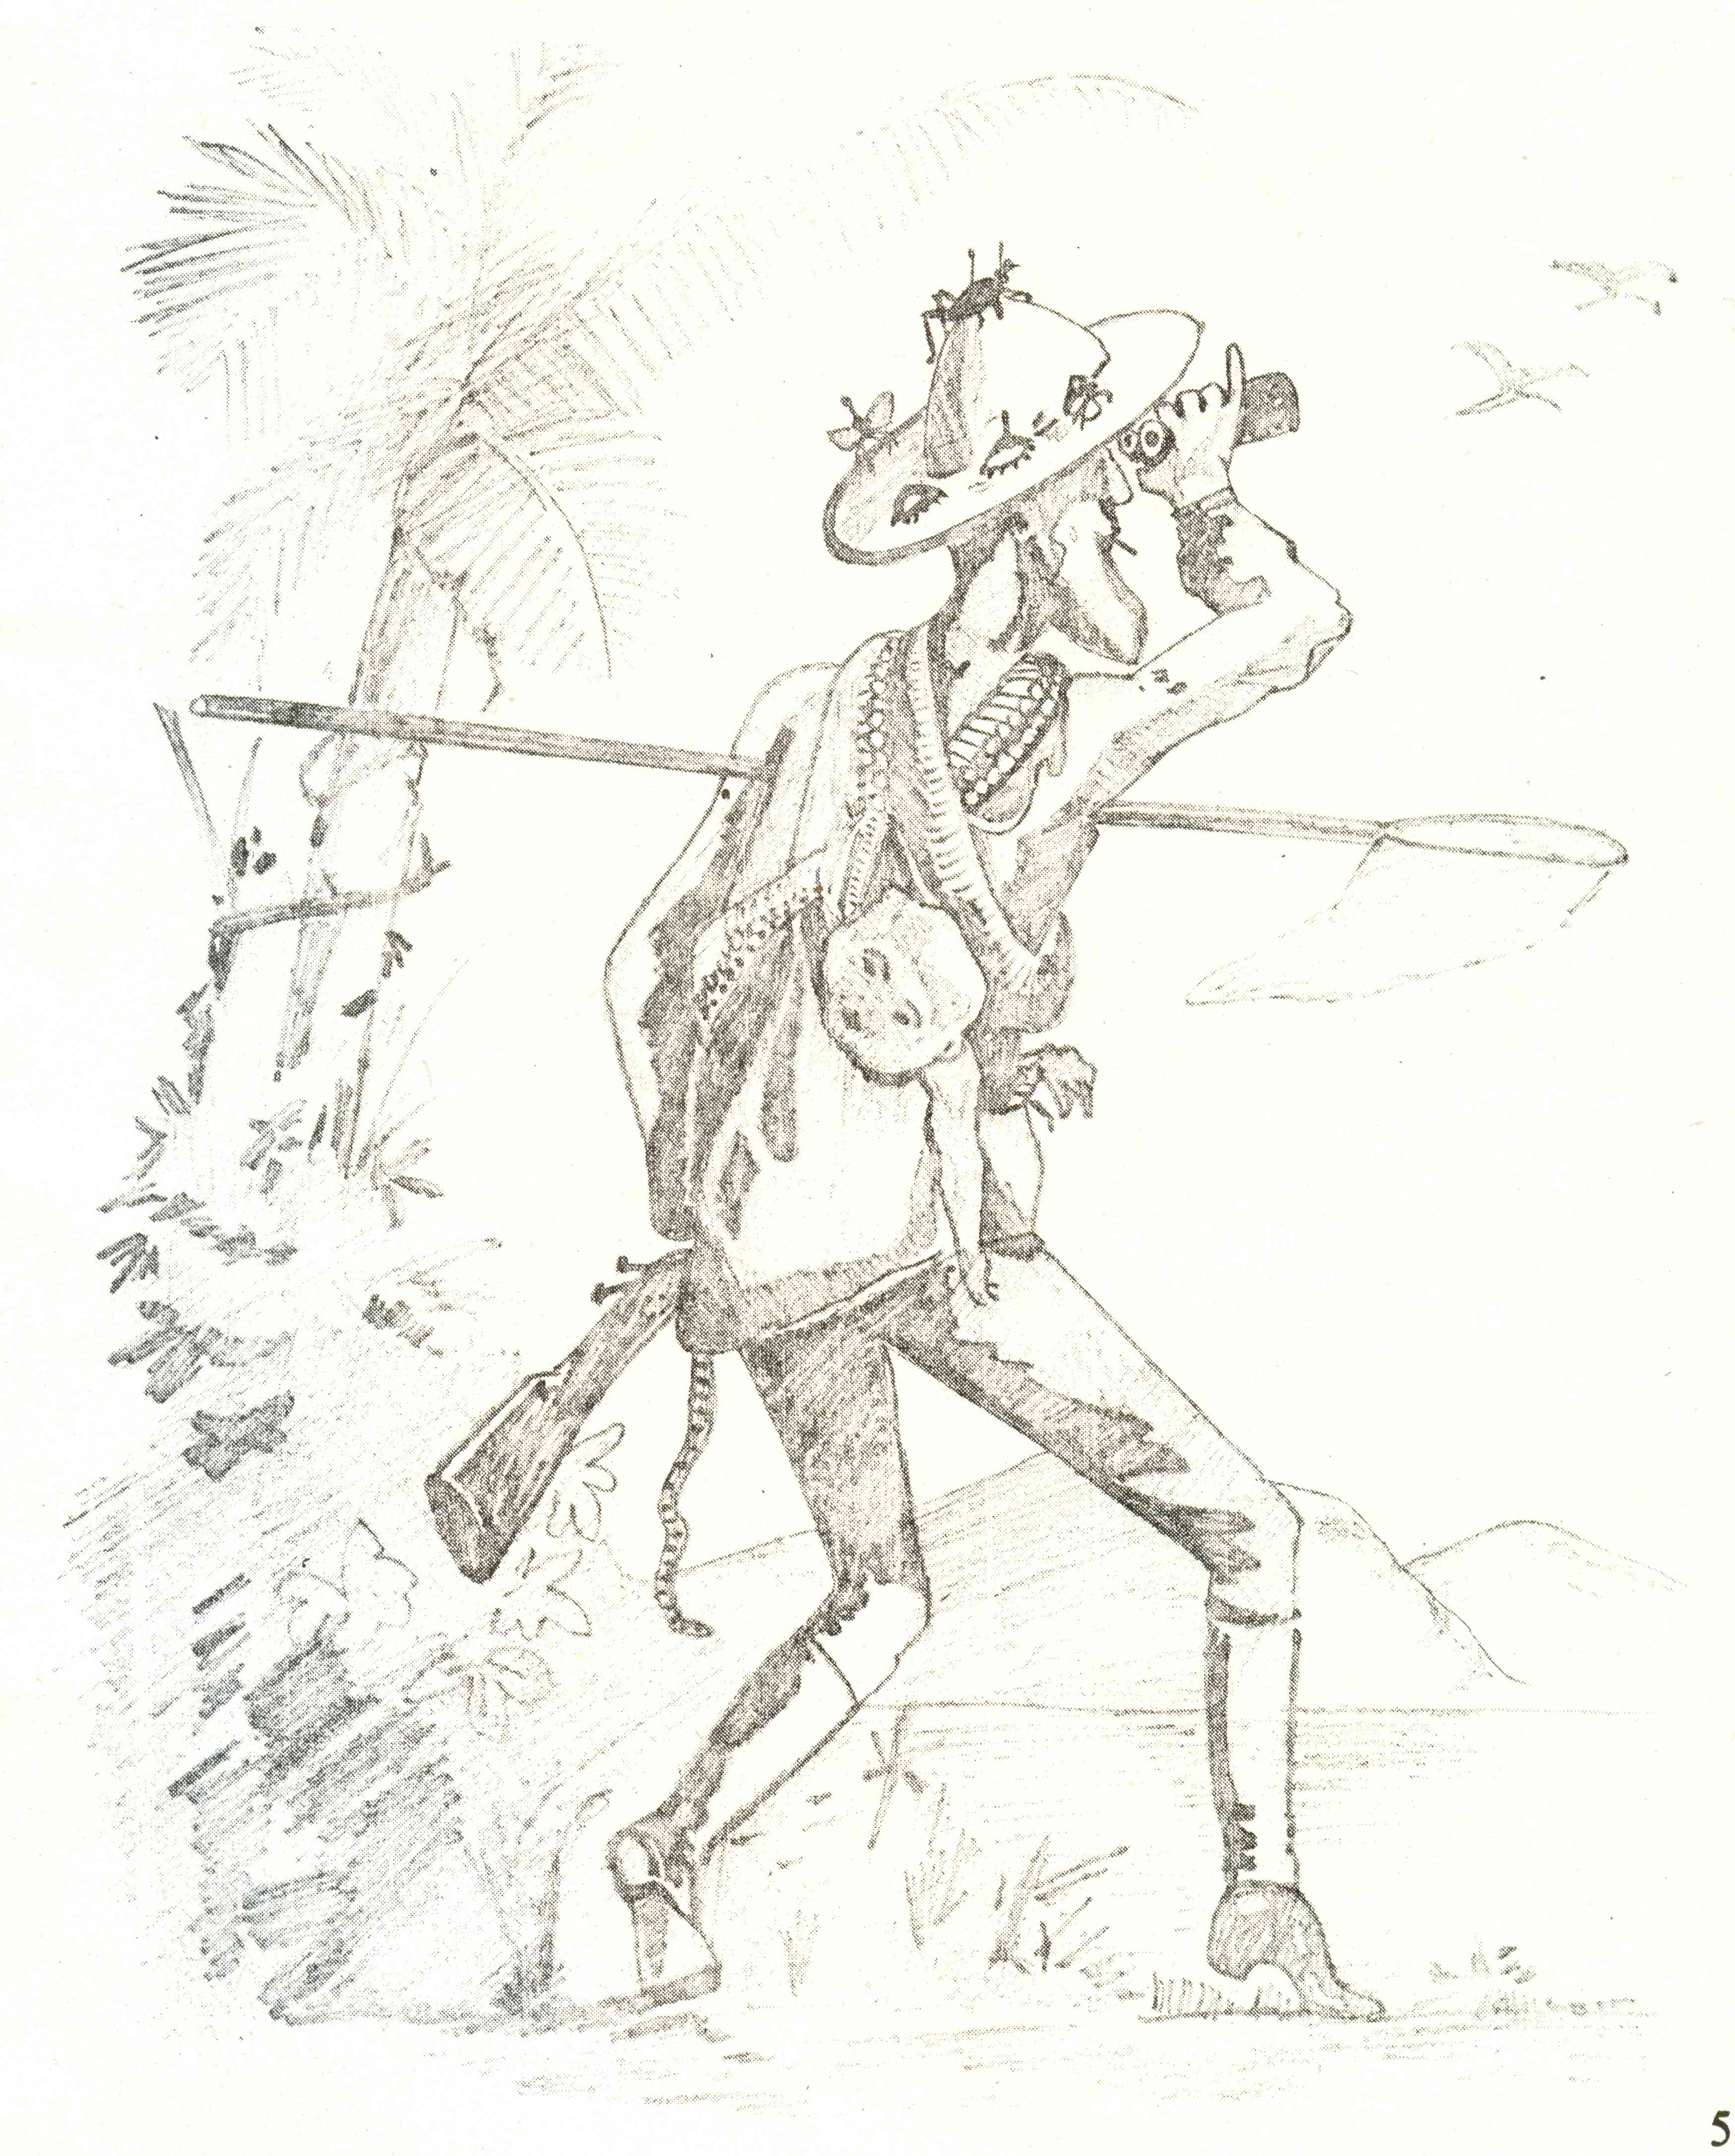 EH Aitkens represented an image of the typical British naturalist, made famous in a sketch by Sterndale: a Jack Sprat figure wearing a hat, a butterfly net and binoculars in hand, and possibly a tiffin in the backpack. (Source: Bombay Natural History Society)